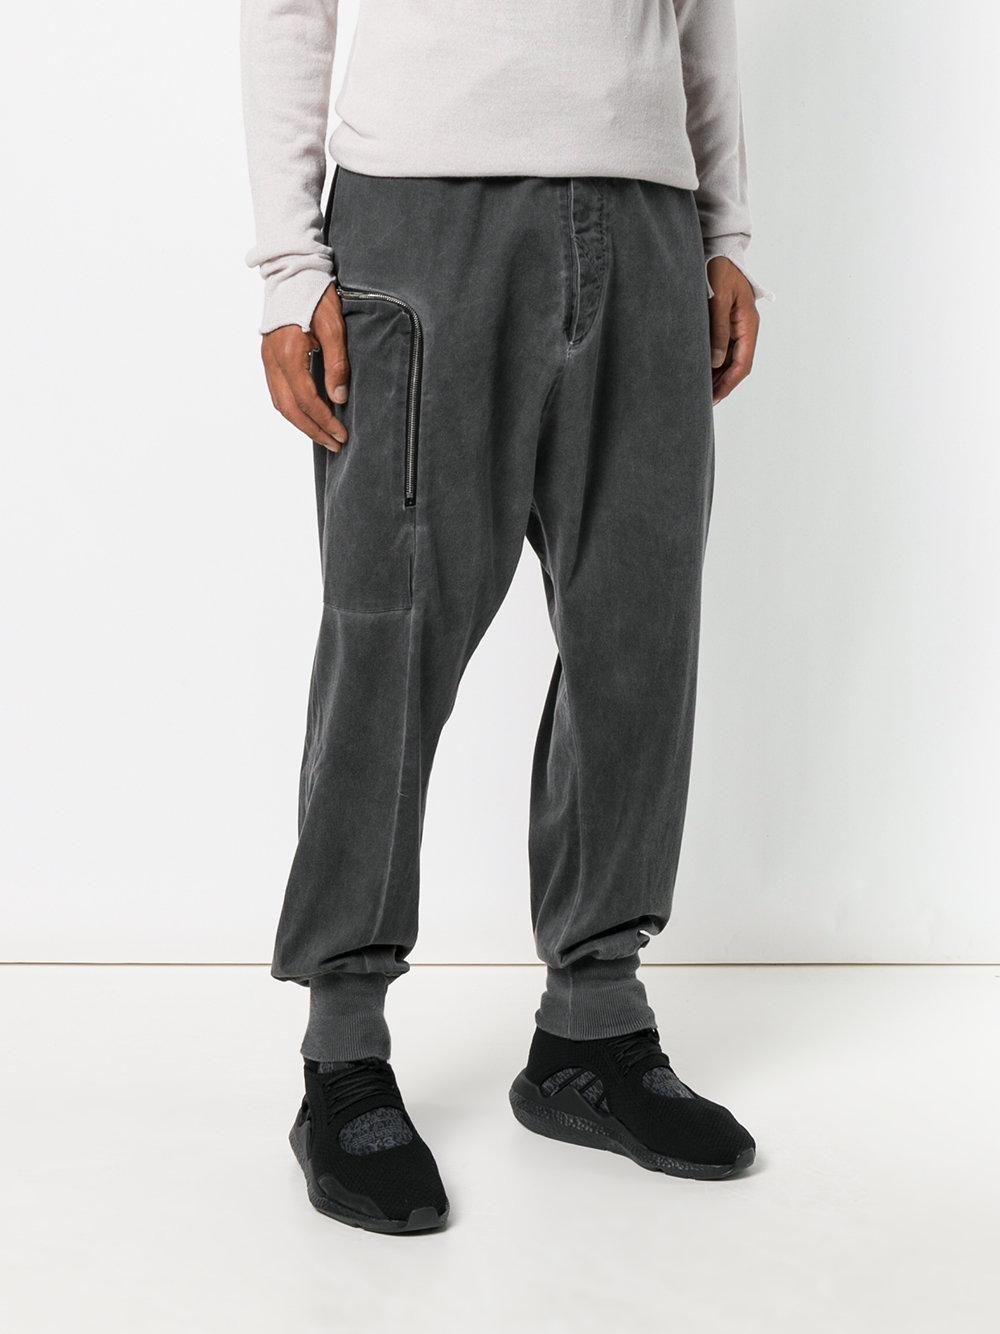 For Sale Cheap Price overdyed drop crotch joggers - Grey Lost And Found Rooms Cheap Sale With Mastercard Really Online Manchester Great Sale Cheap Online Eastbay Sale Online YkrGyDO2c